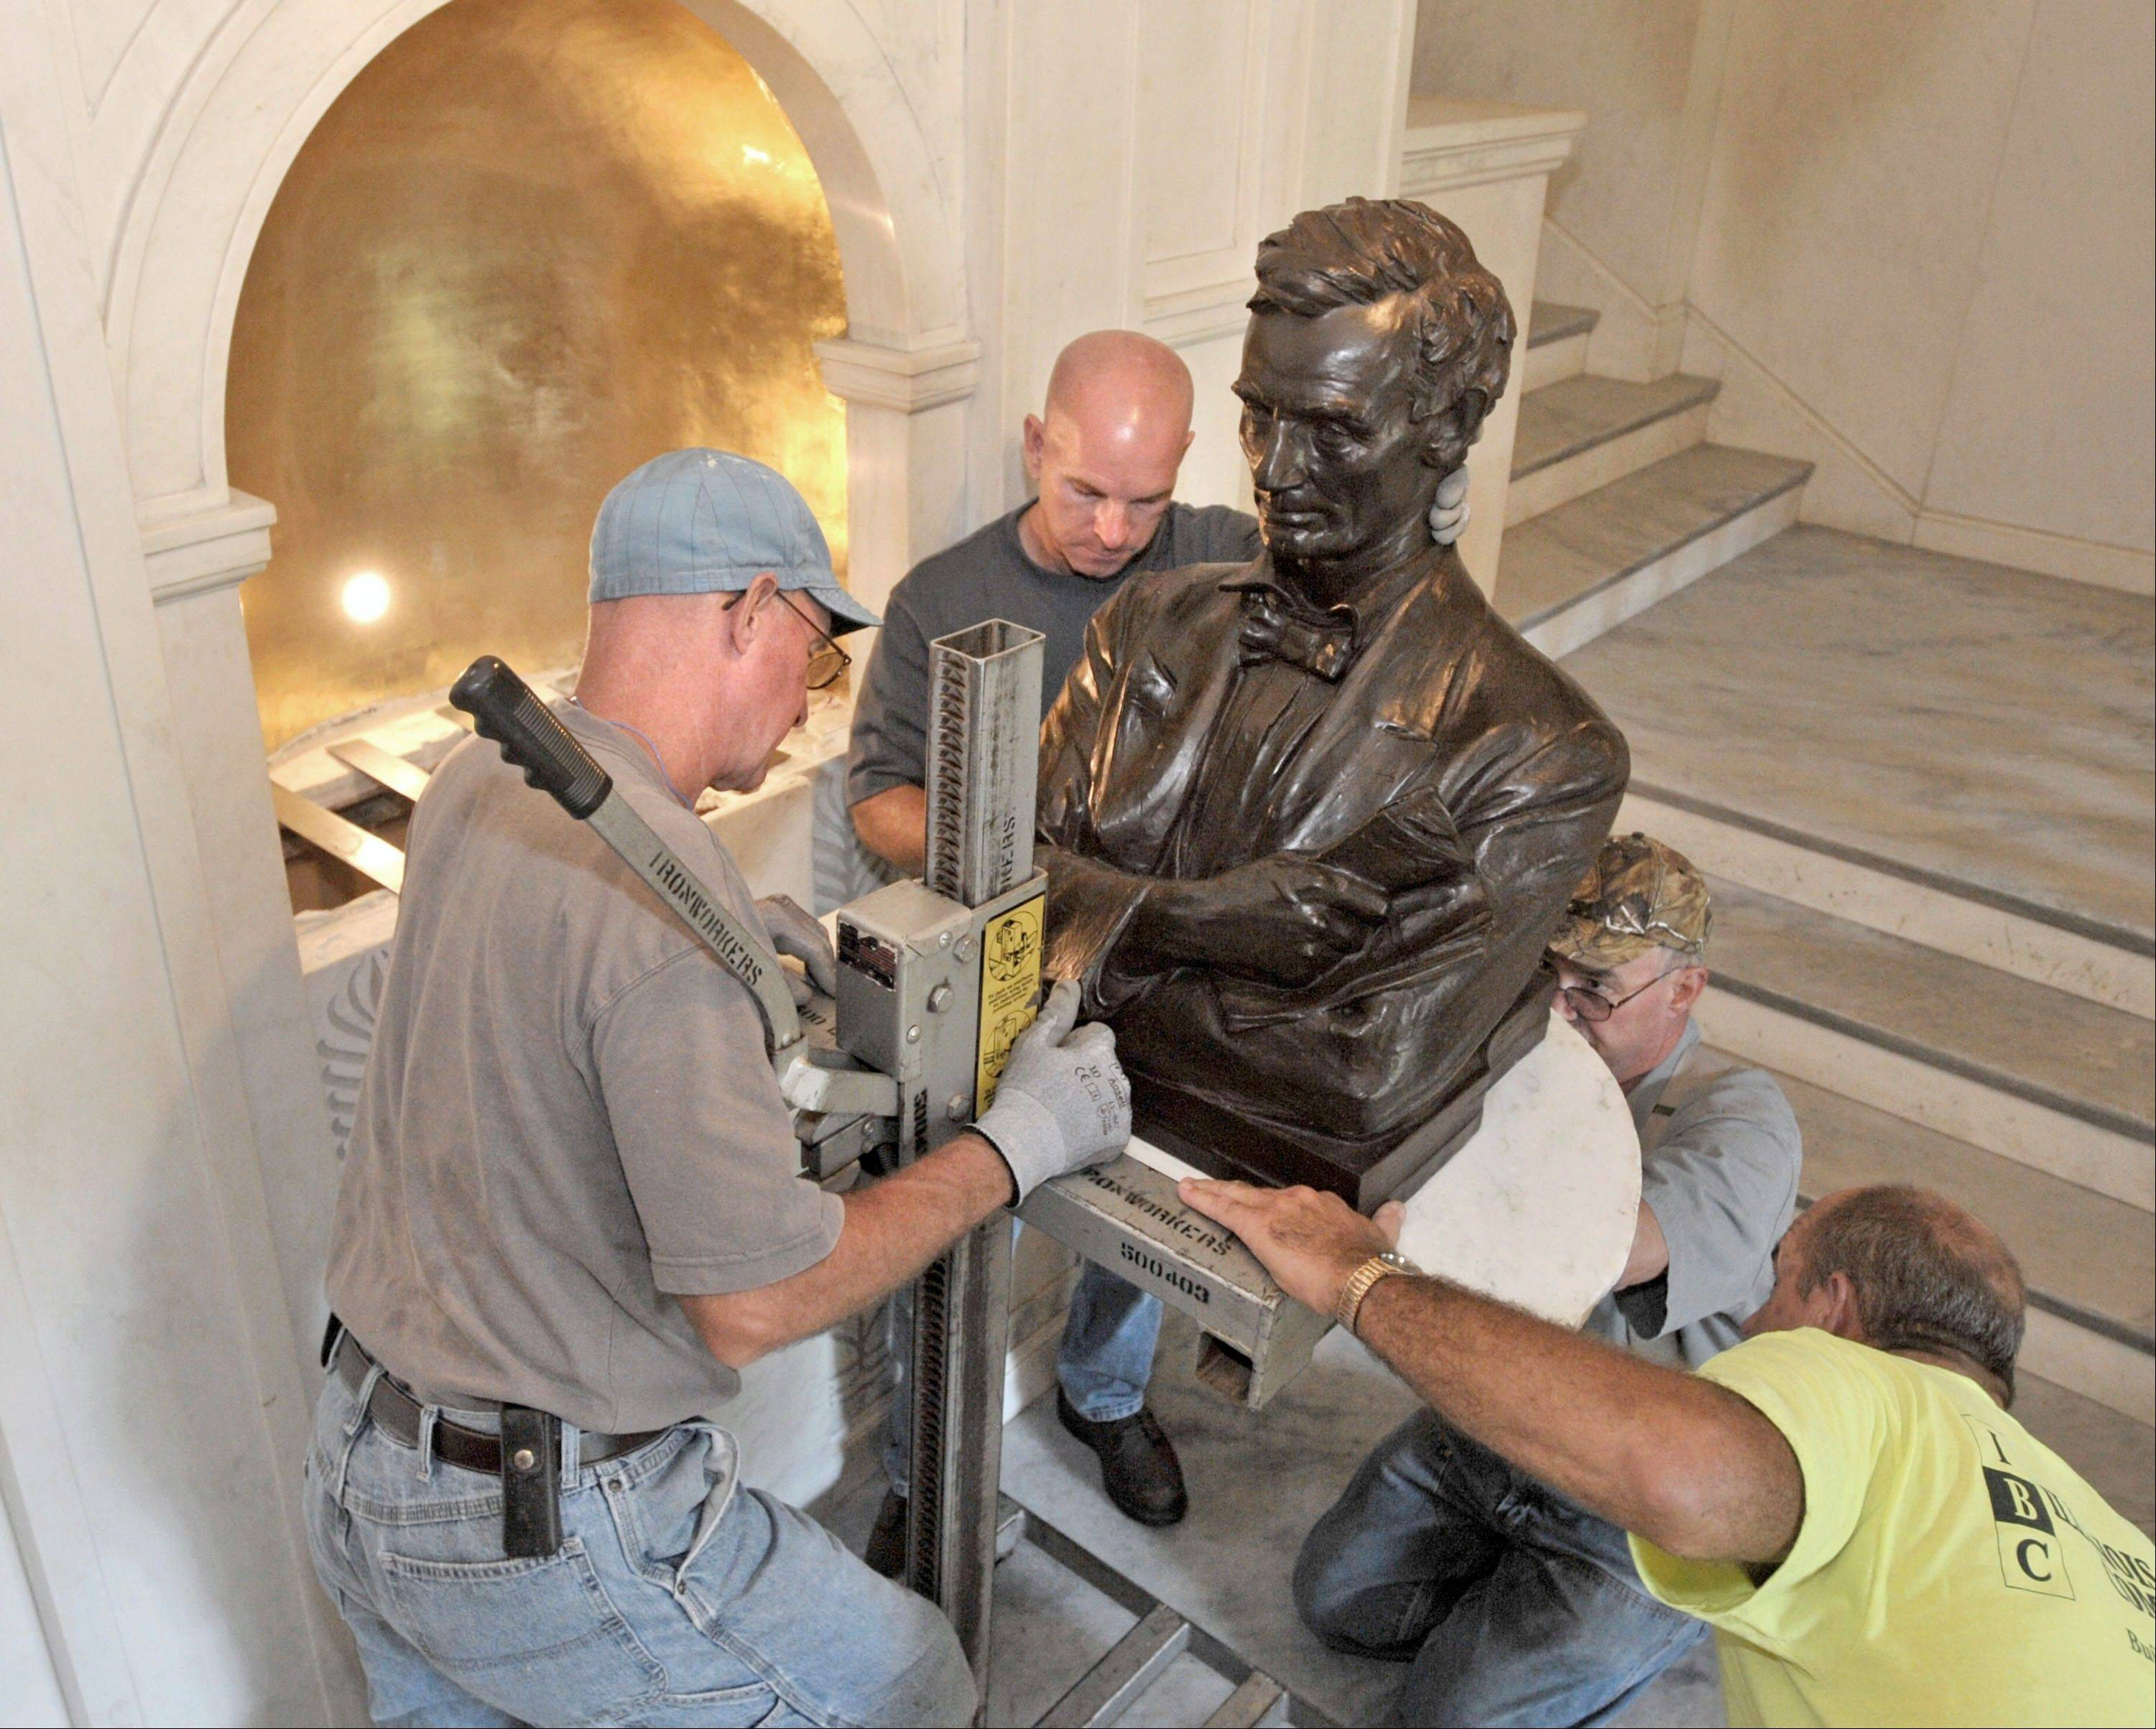 From left, University of Illinois iron workers Ron Cler, Todd Hawkins, Gary Fry, and brick mason Bill Mastny place the bronze bust of Abraham Lincoln into it's alcove in after it was restored, the main entrance to Lincoln Hall on the University of Illinois campus, in Urbana.